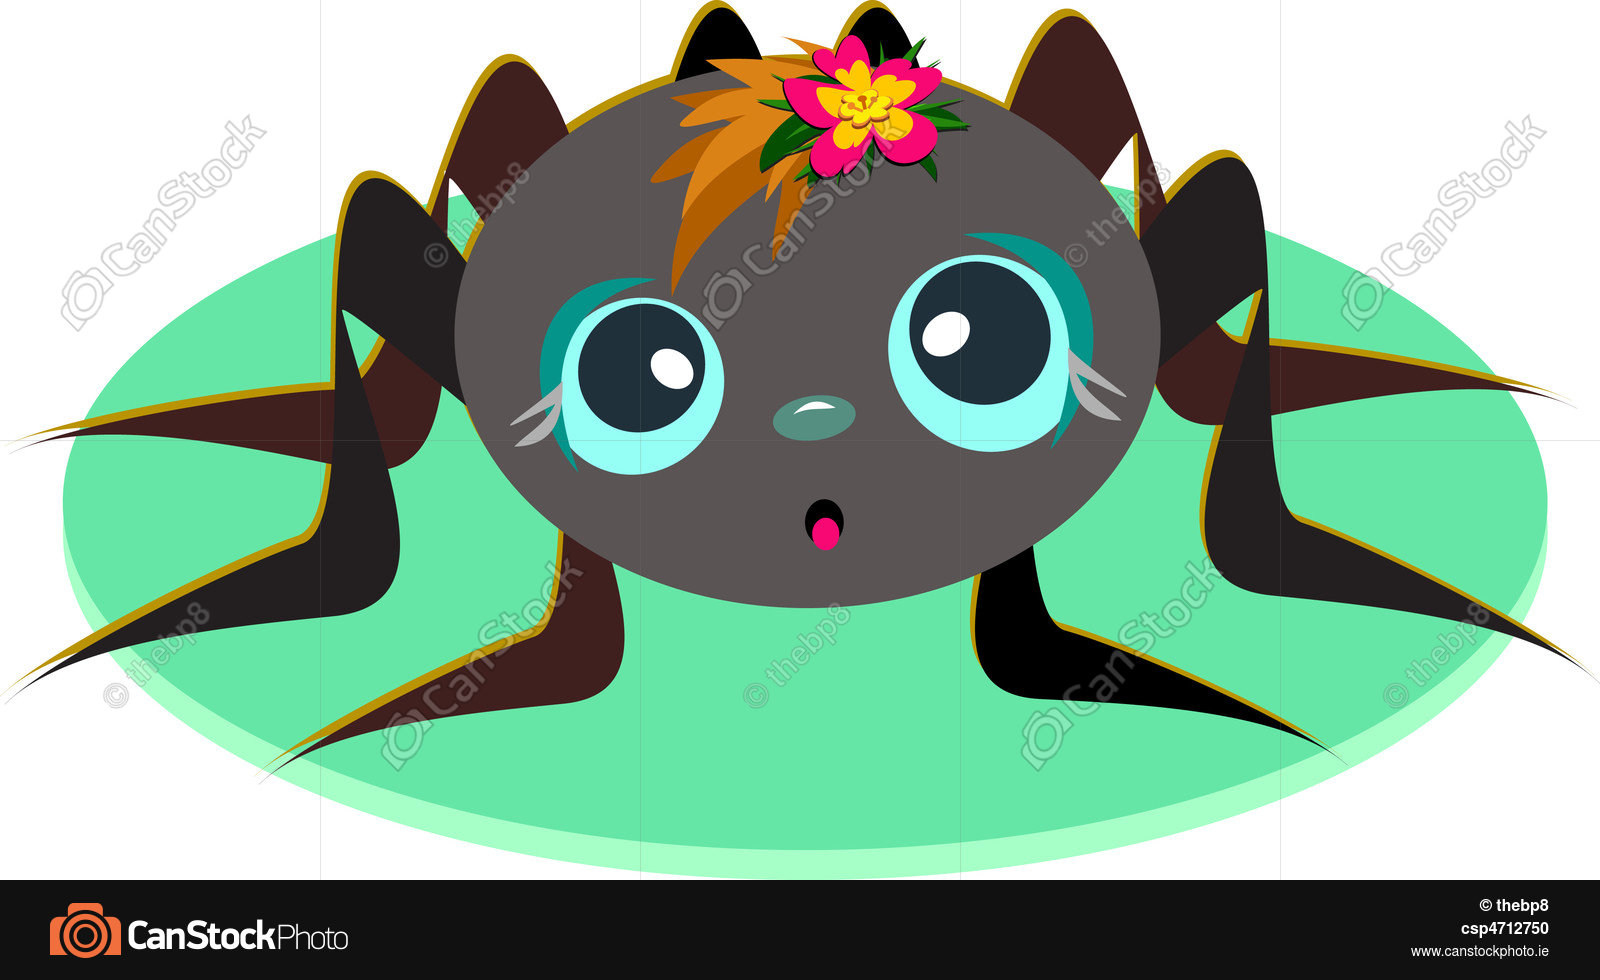 1600x980 This Cute Spider Baby Has A Colorful Flower On Her Head. Vector